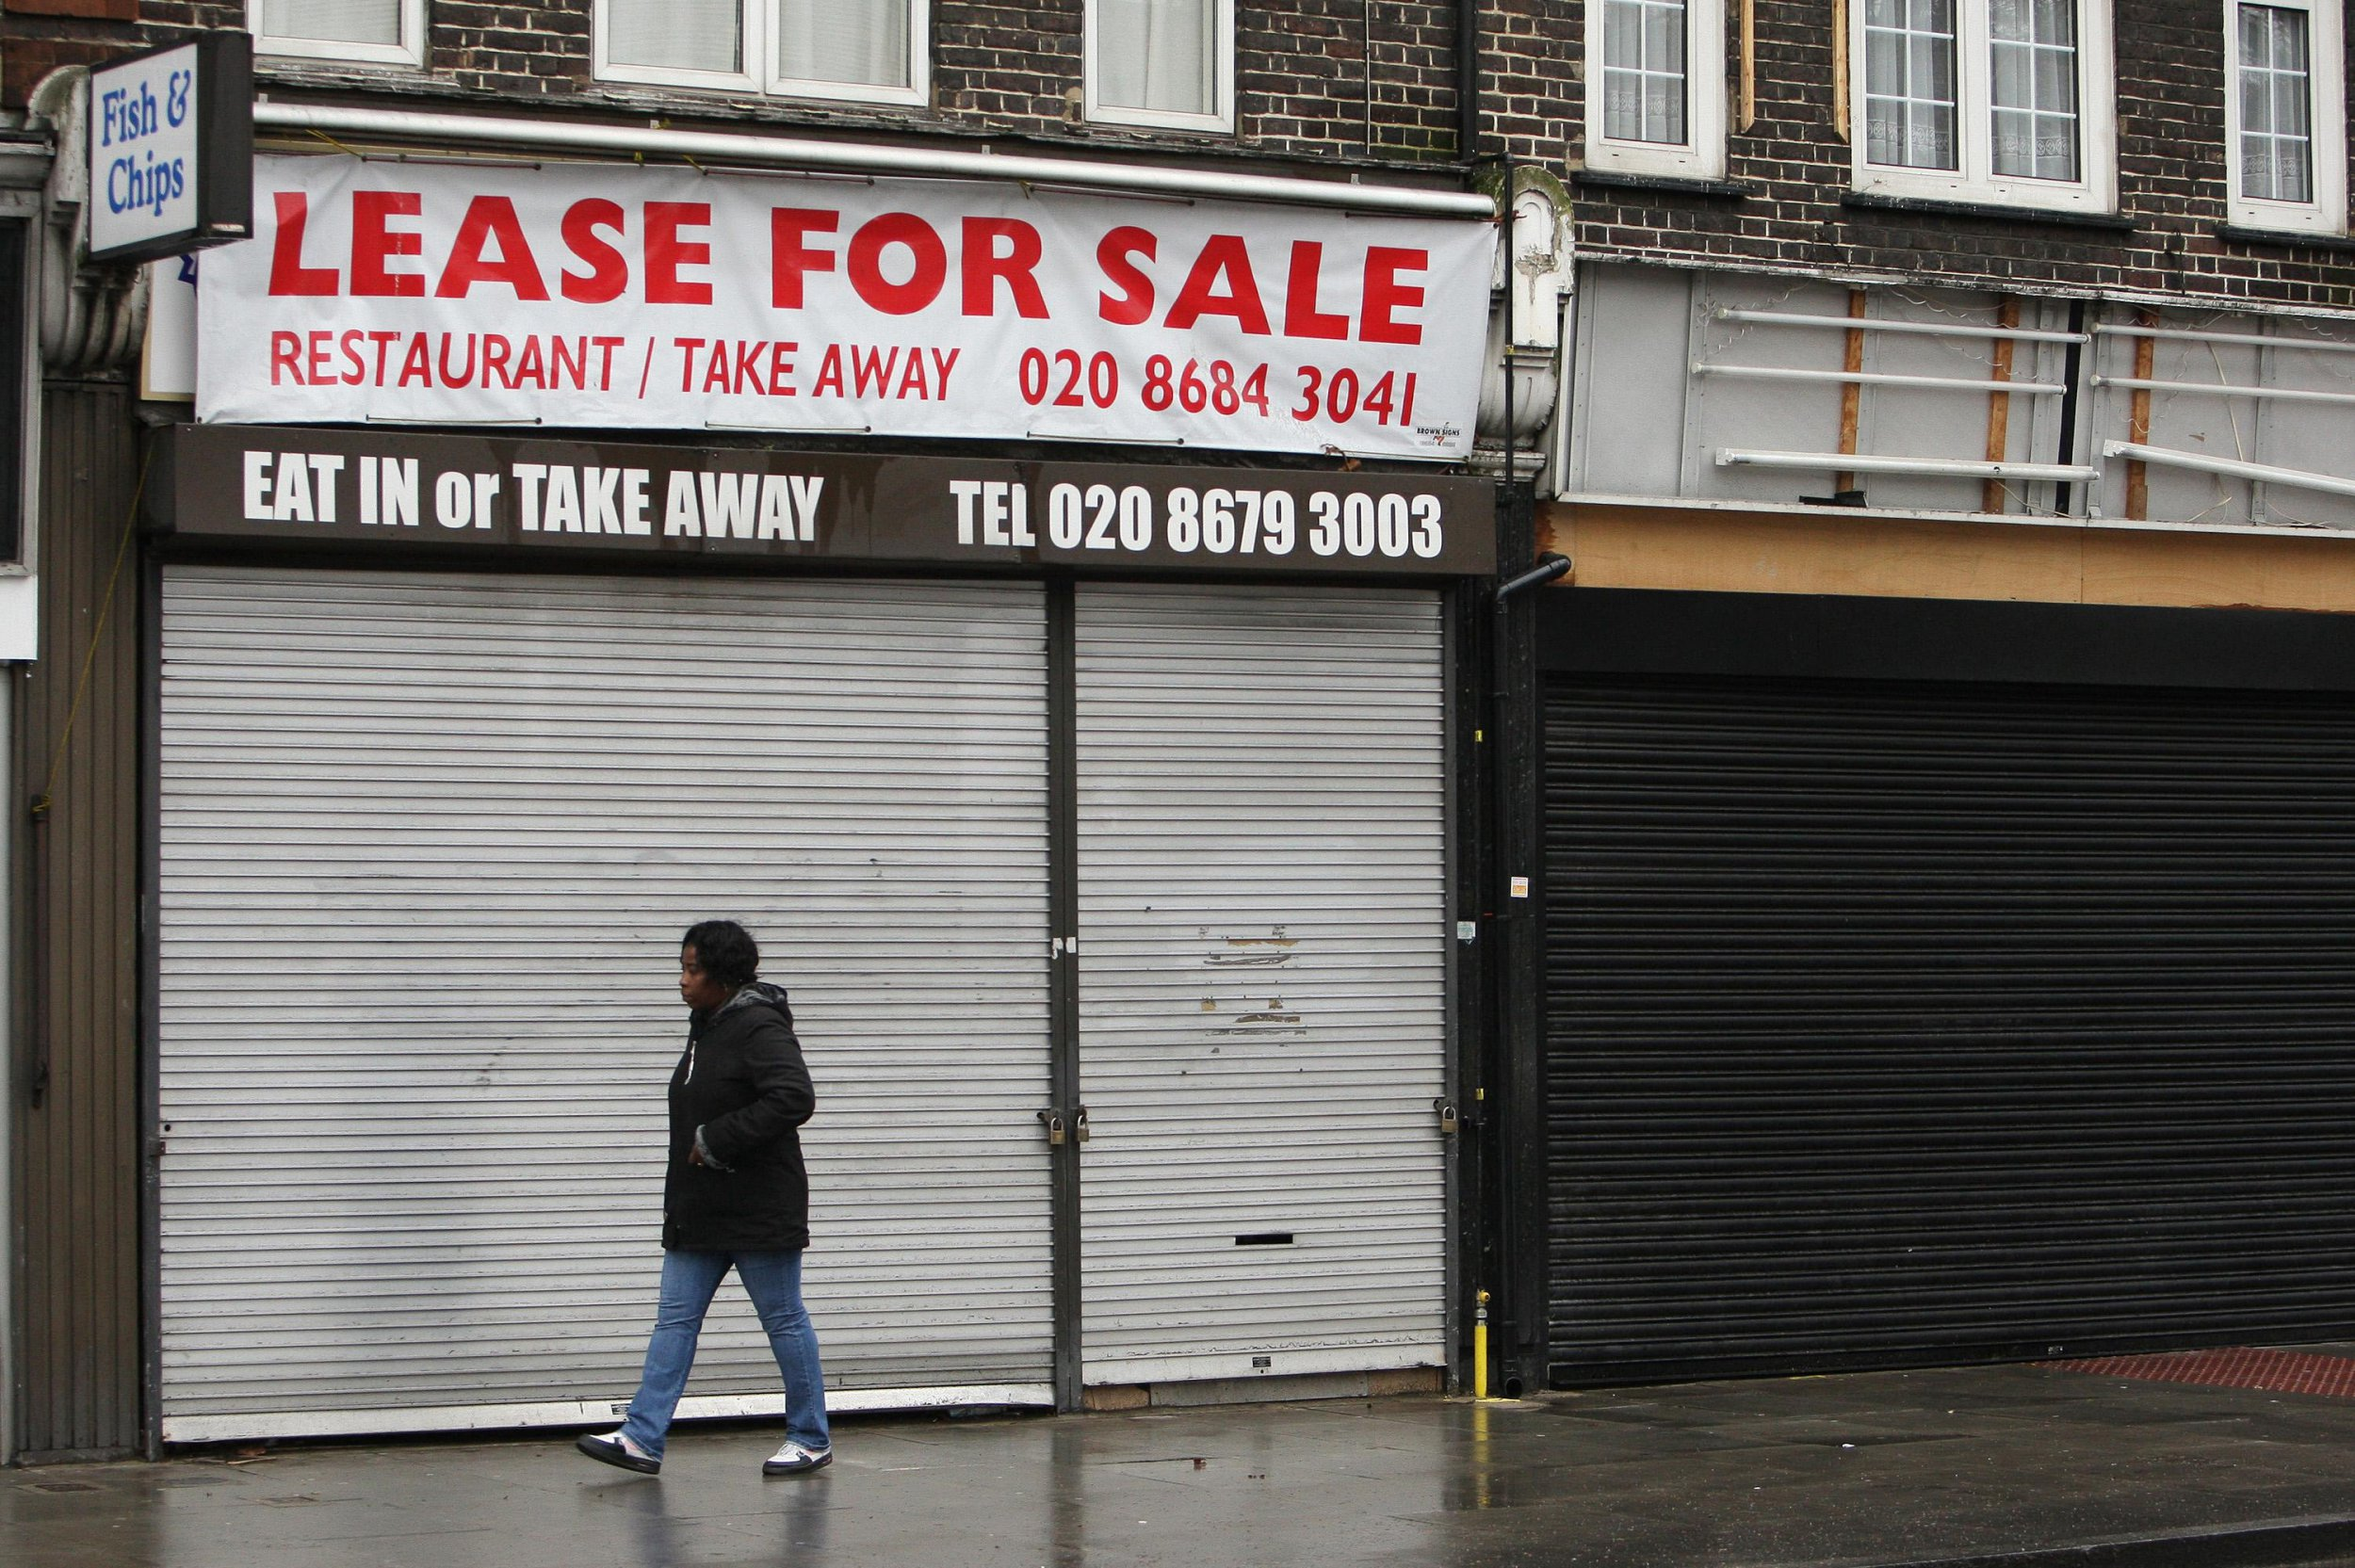 A woman walks past shuttered shops on Streatham High Road in south London. Official figures today reveal the UK is officially in recession. The economy saw its worst output performance since 1980 in the final three months of 2008.